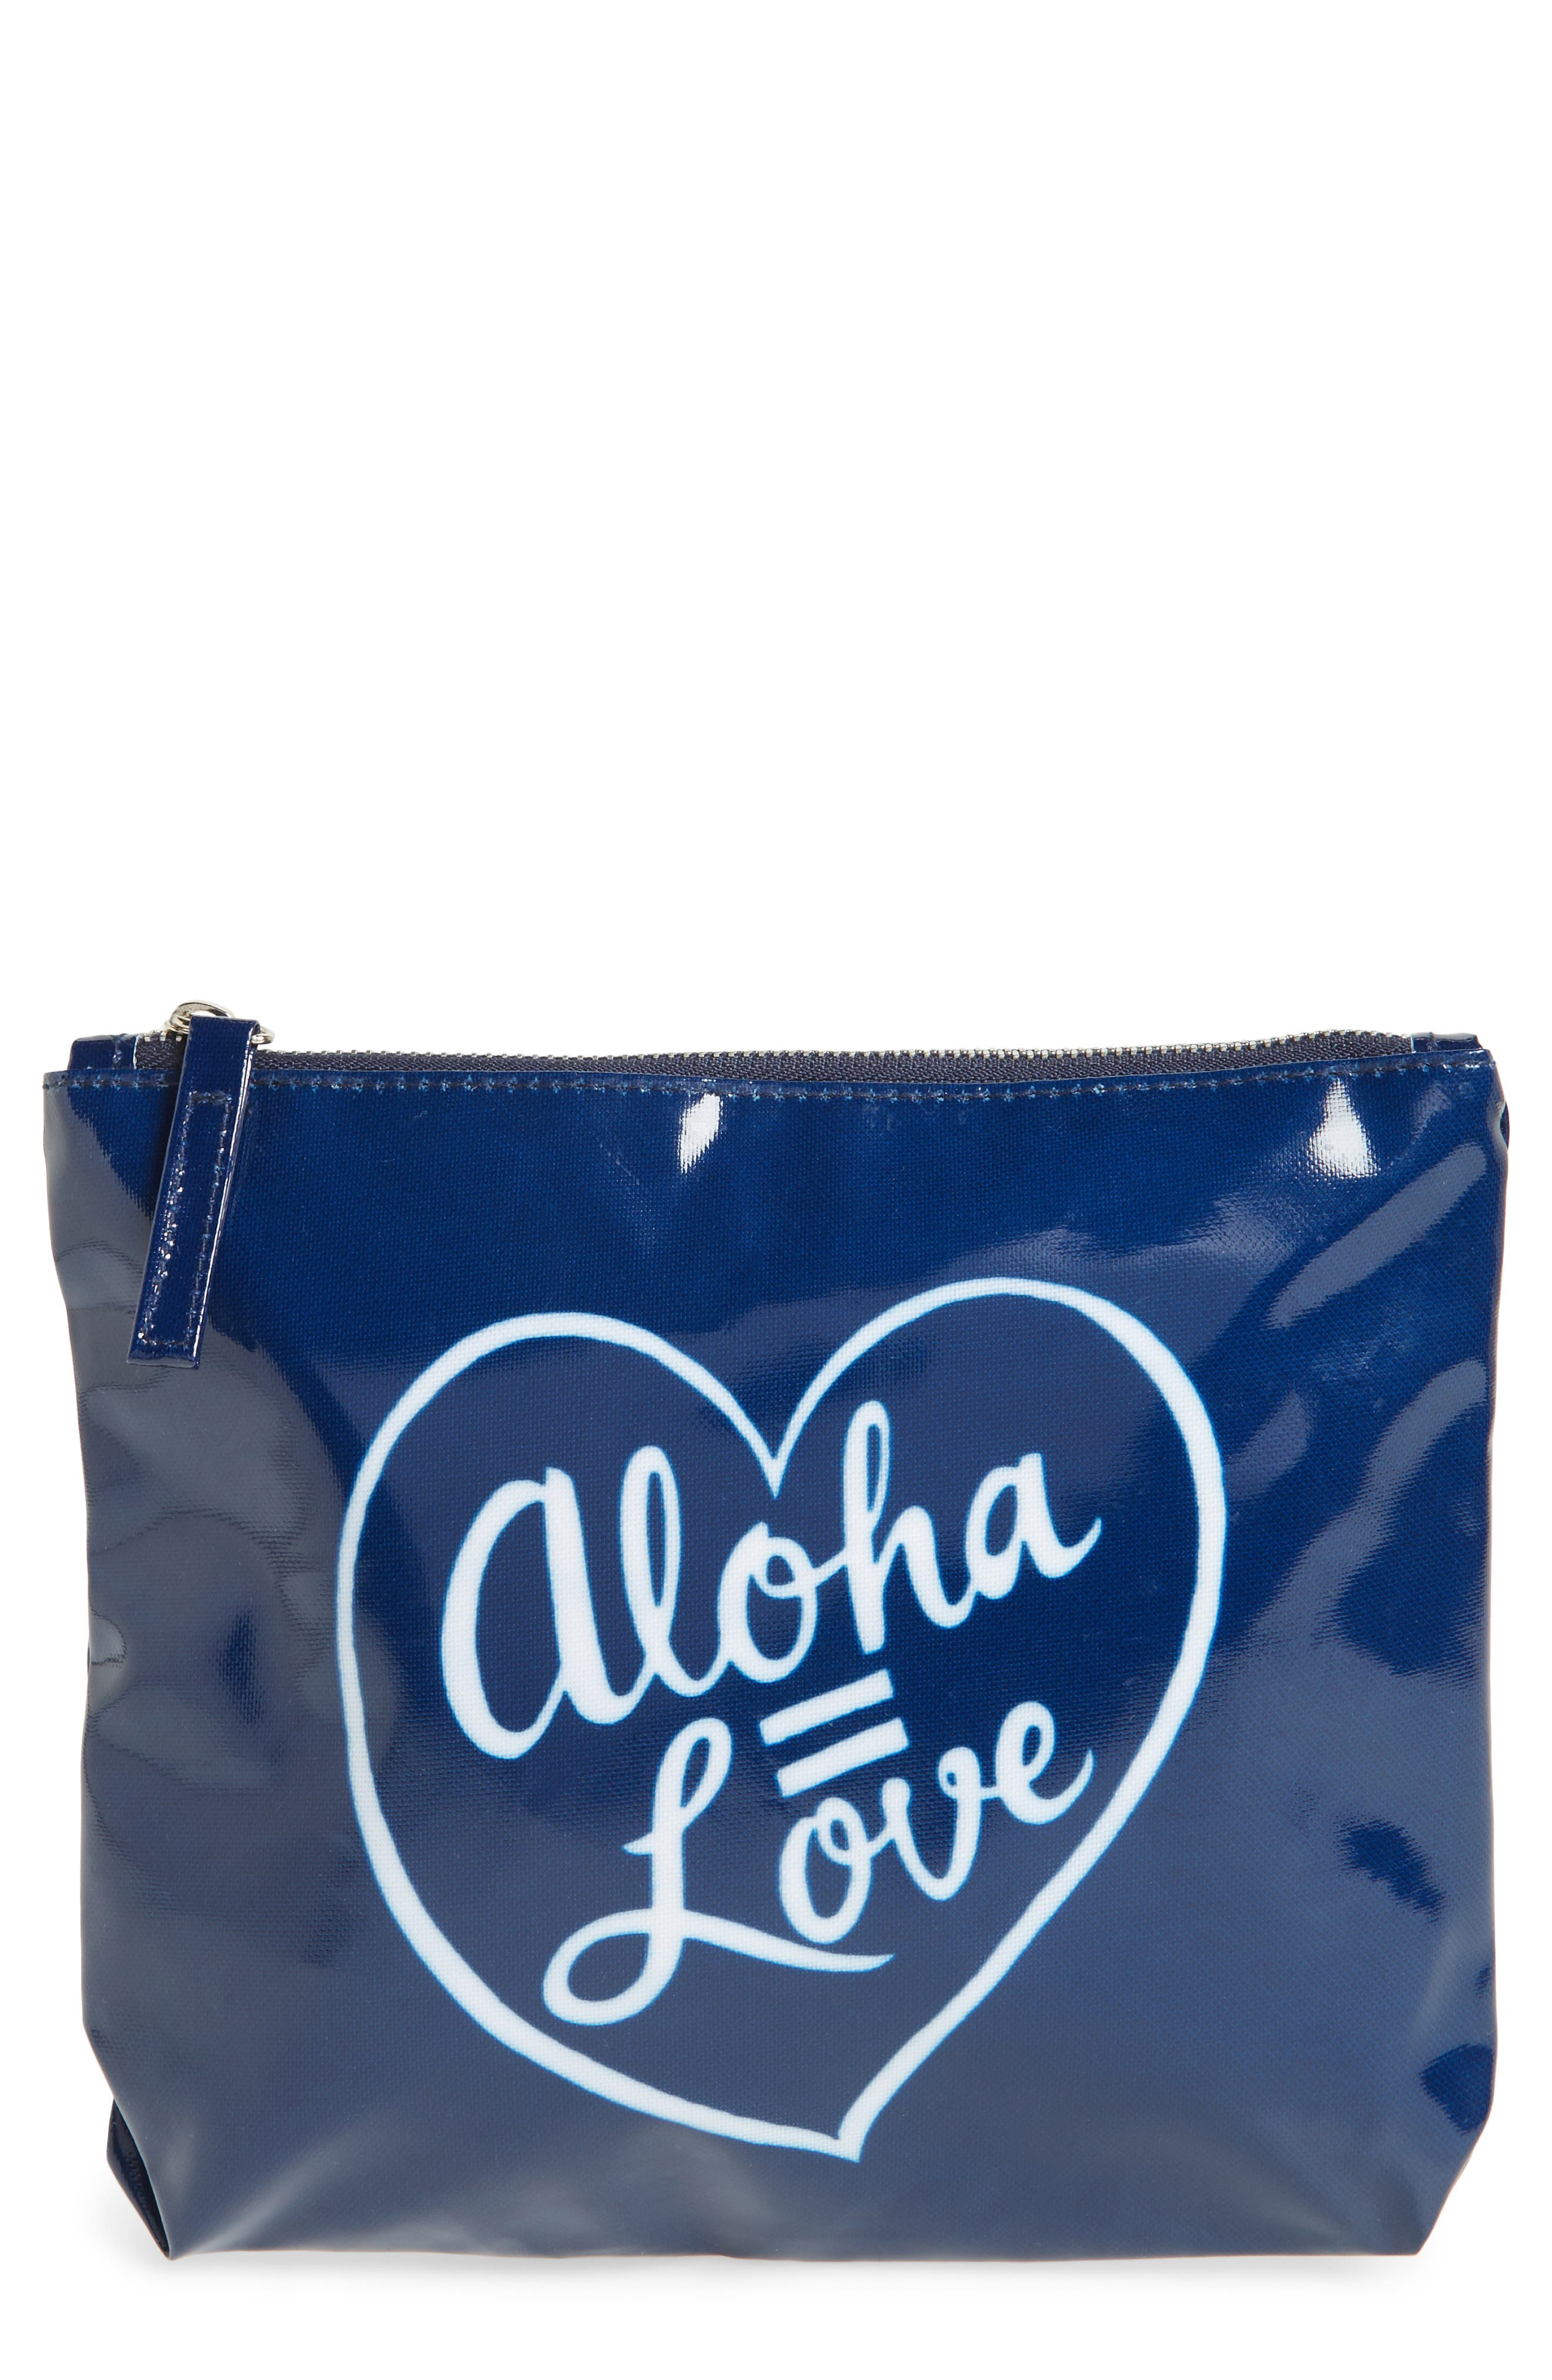 Aloha Love Pouch,                             Main thumbnail 1, color,                             400